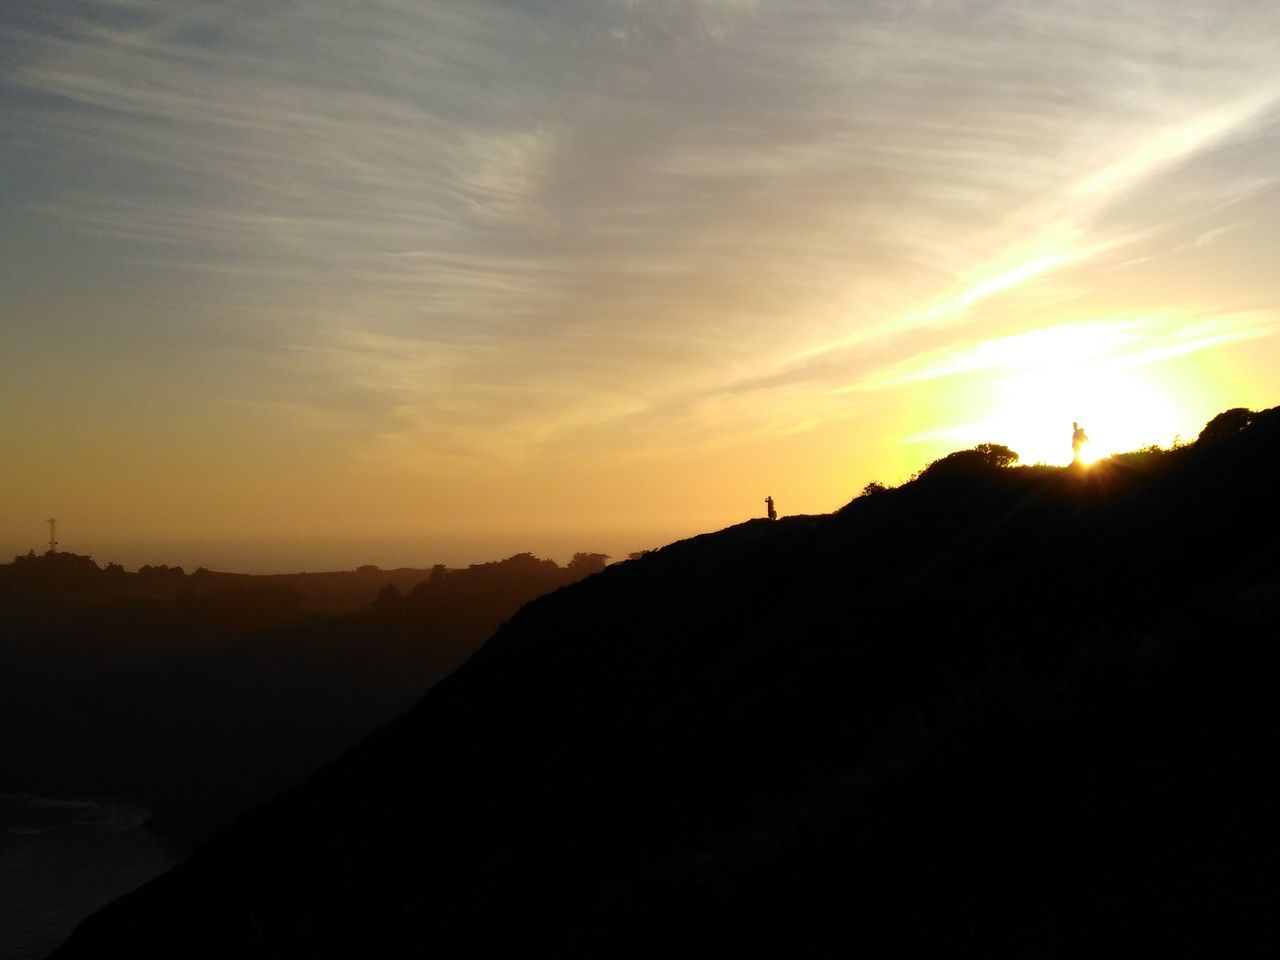 sunset, silhouette, sun, nature, sky, landscape, beauty in nature, scenics, outdoors, no people, mountain